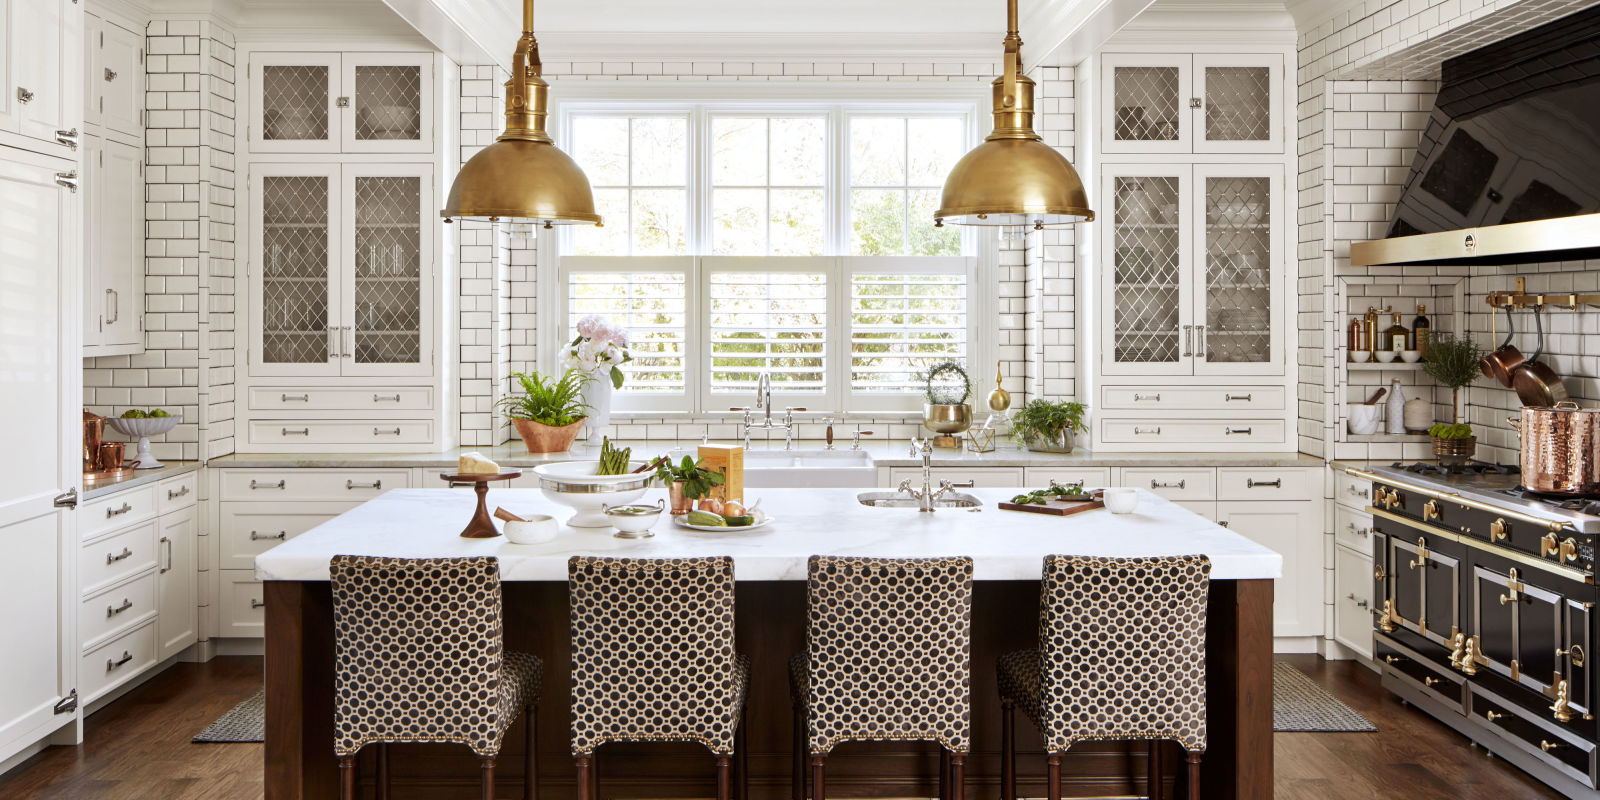 8 Kitchen Tips From Restaurant Pros Rebekah Zaveloff Designs A Professional Kitchen